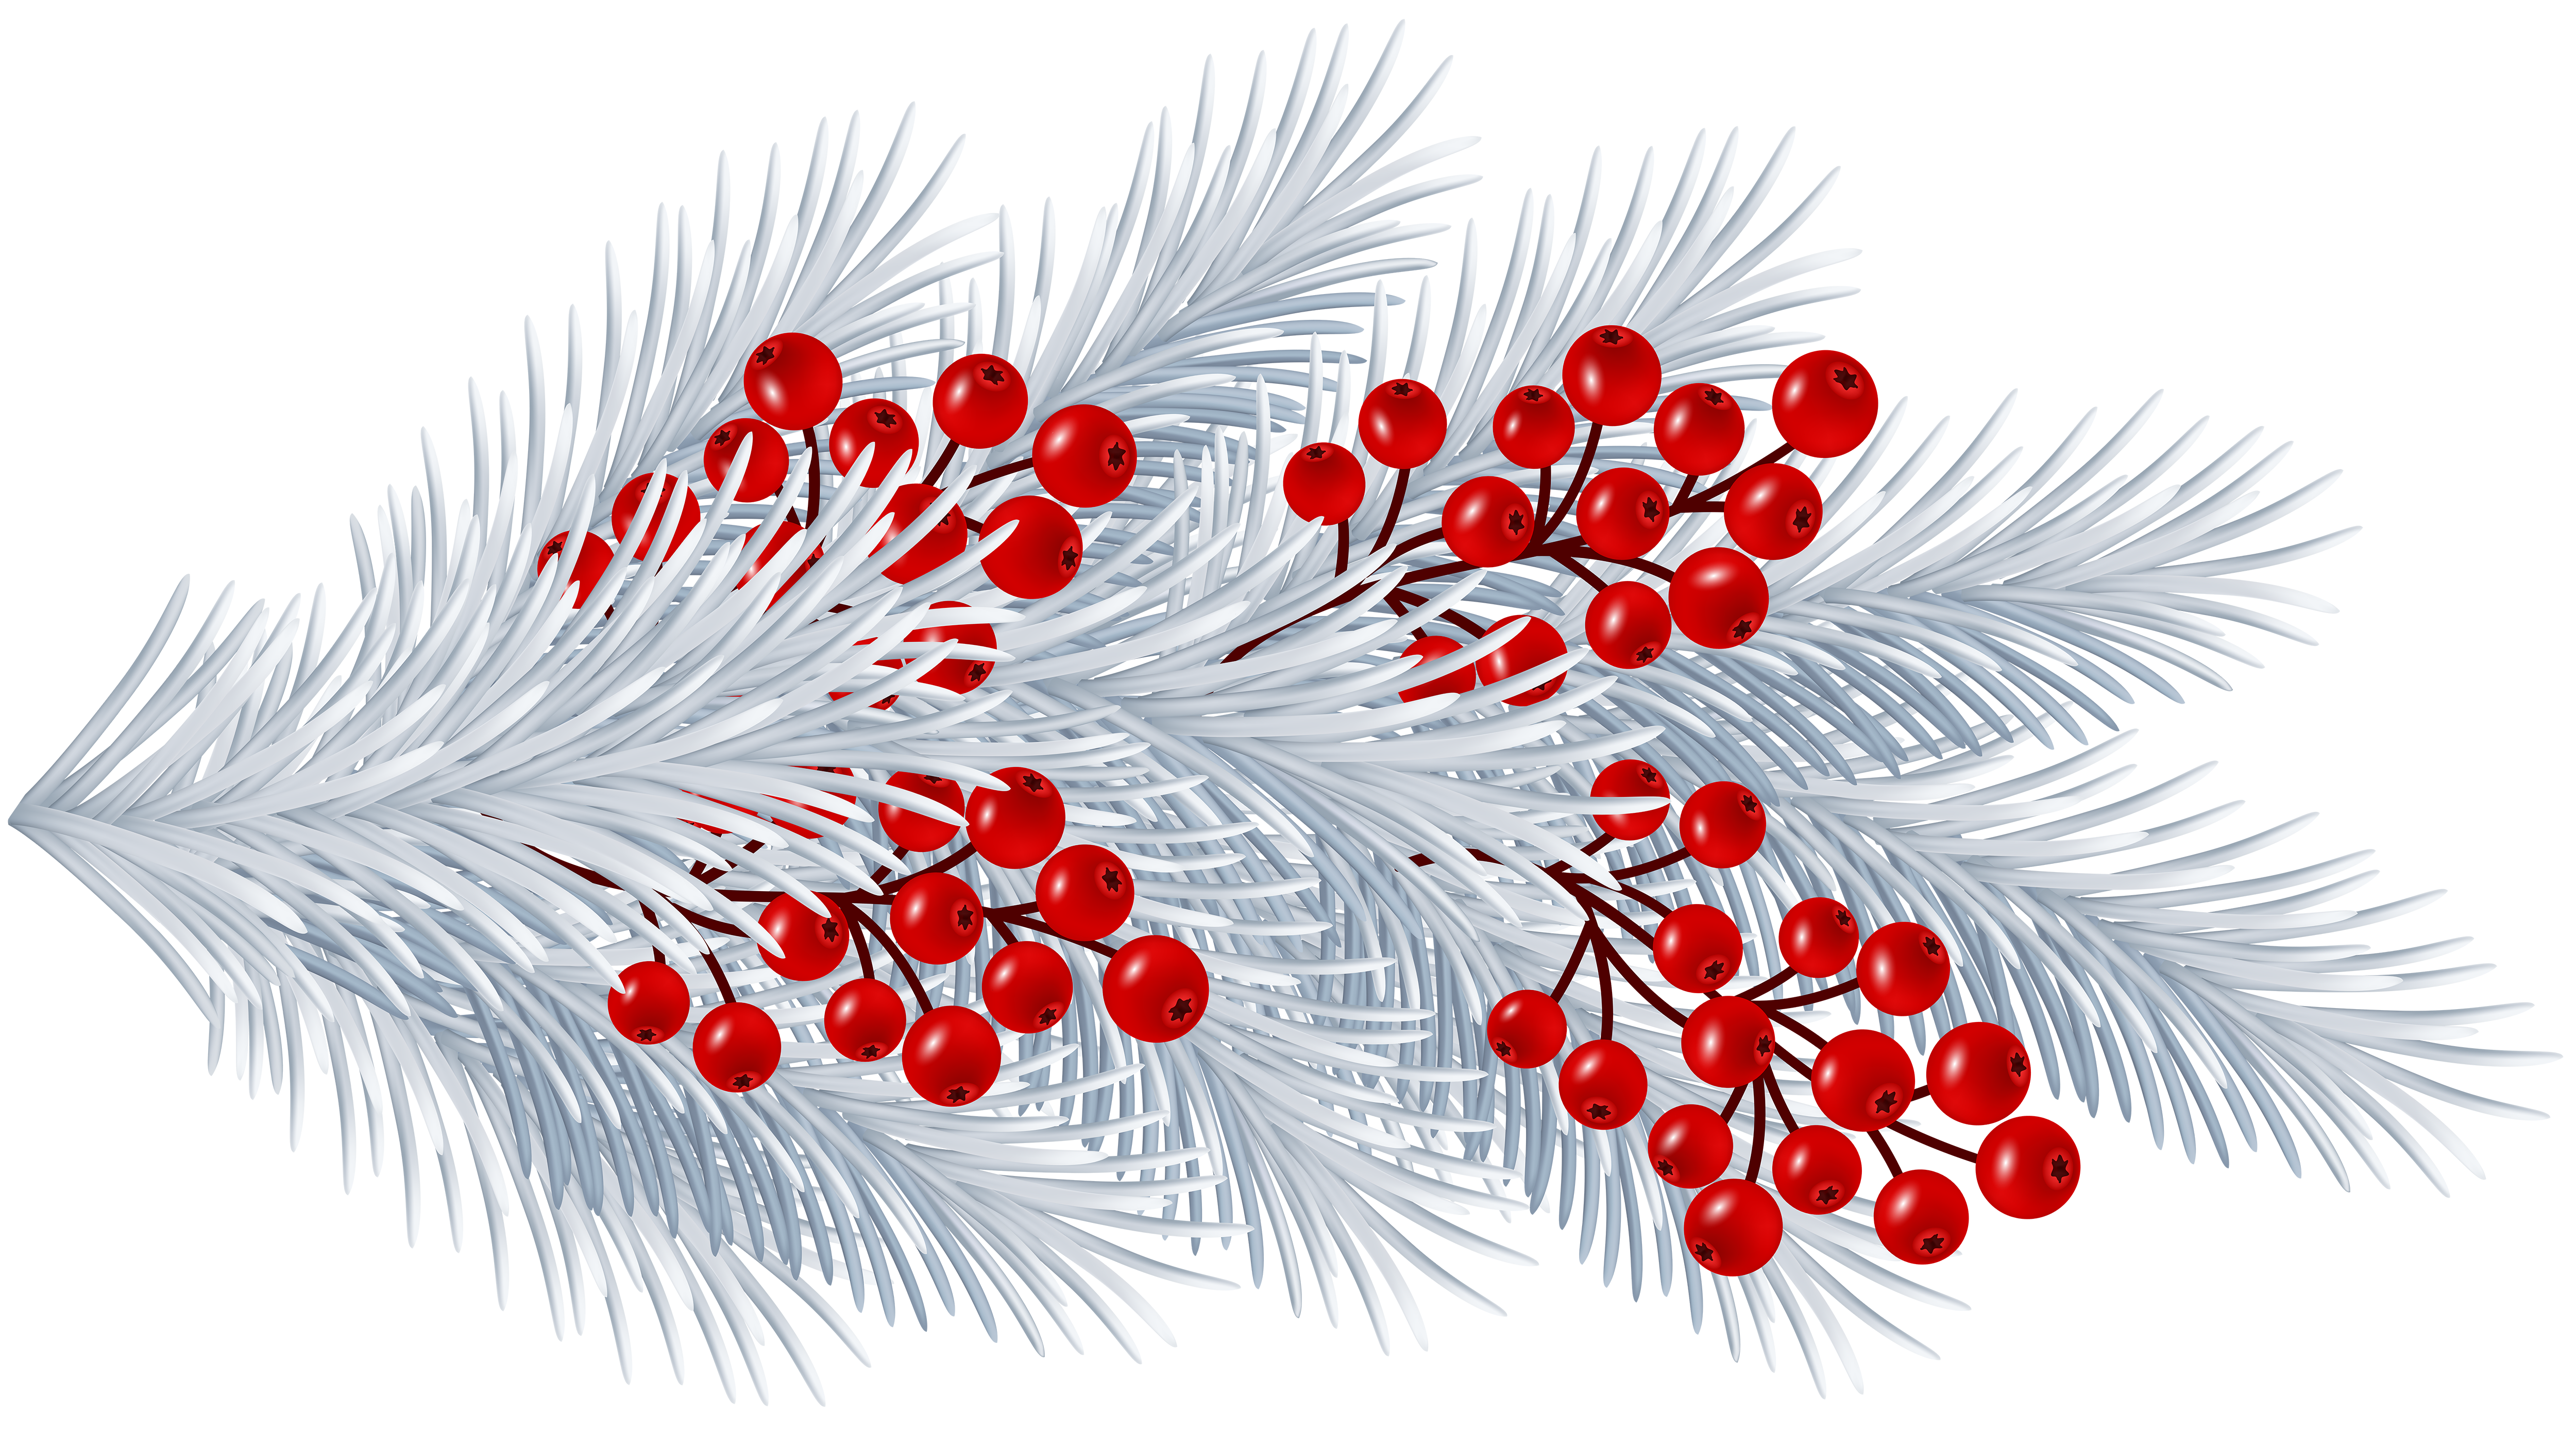 Pomegranate clipart branch. Christmas white transparent png